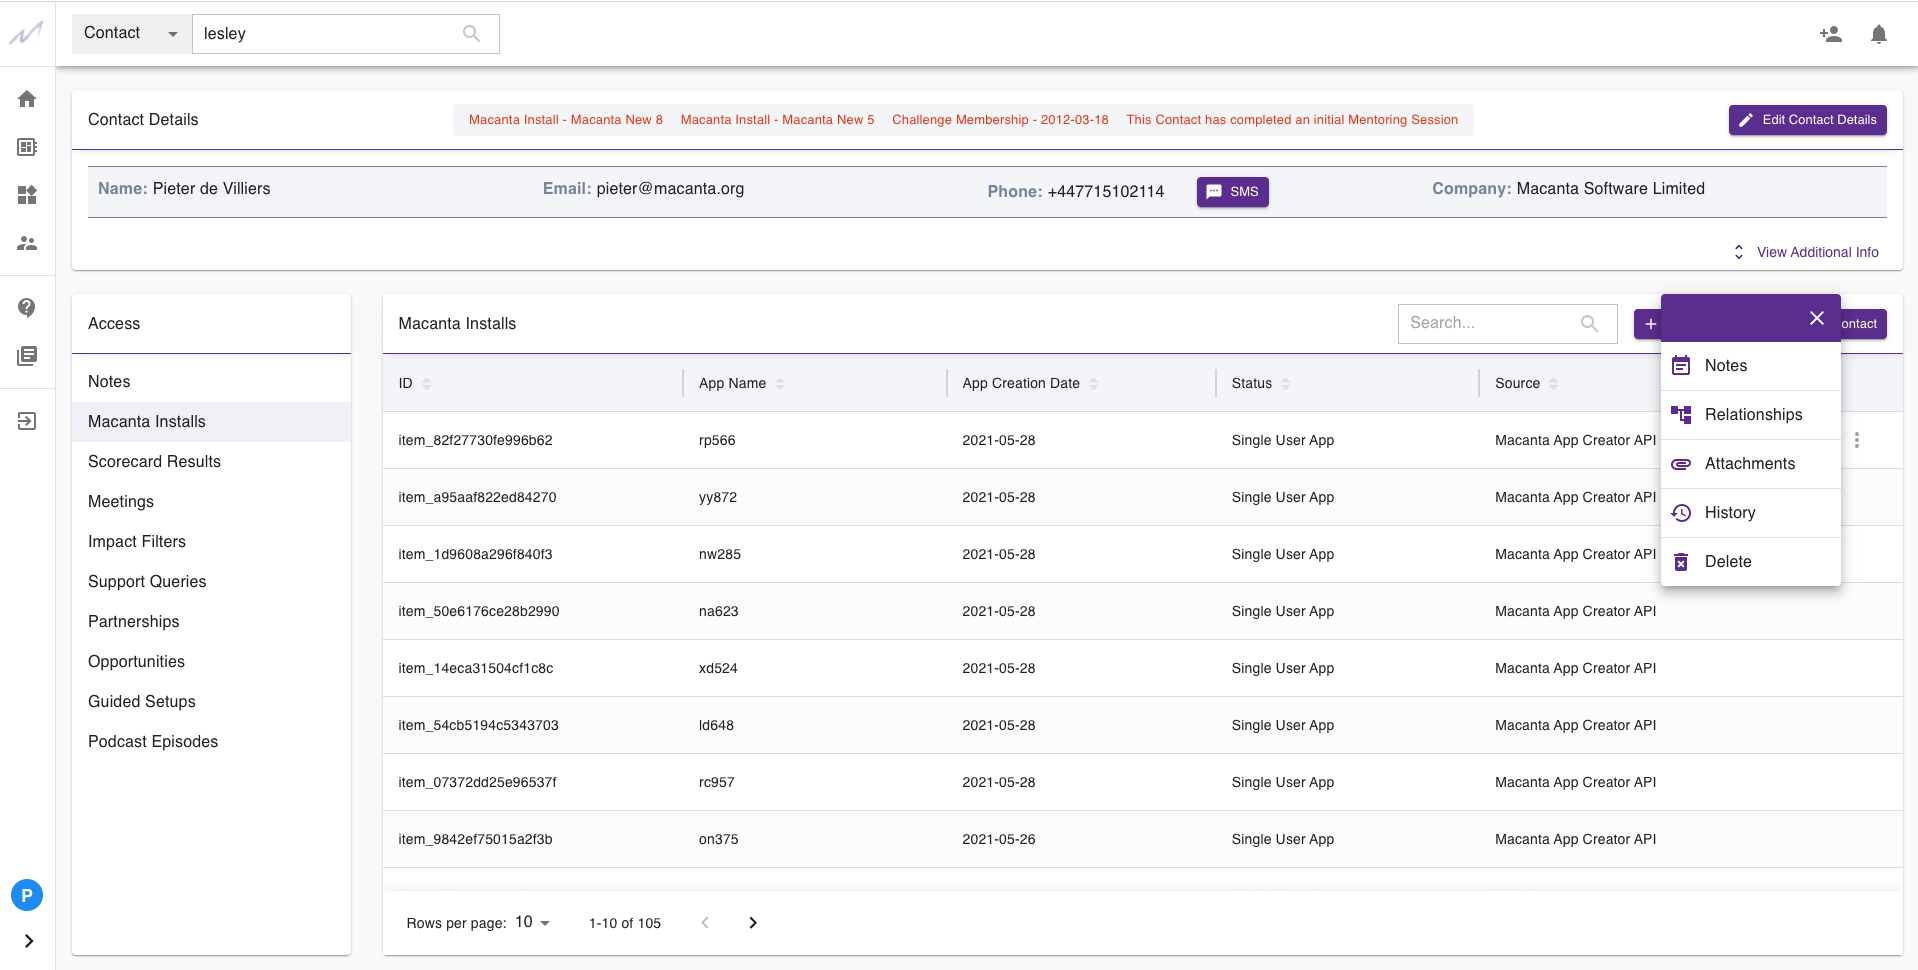 List view of any Data Objects the viewed contact has a relationship to, with easy access to all Notes, Relationships, Attached Files as well as complete Data and Automation History